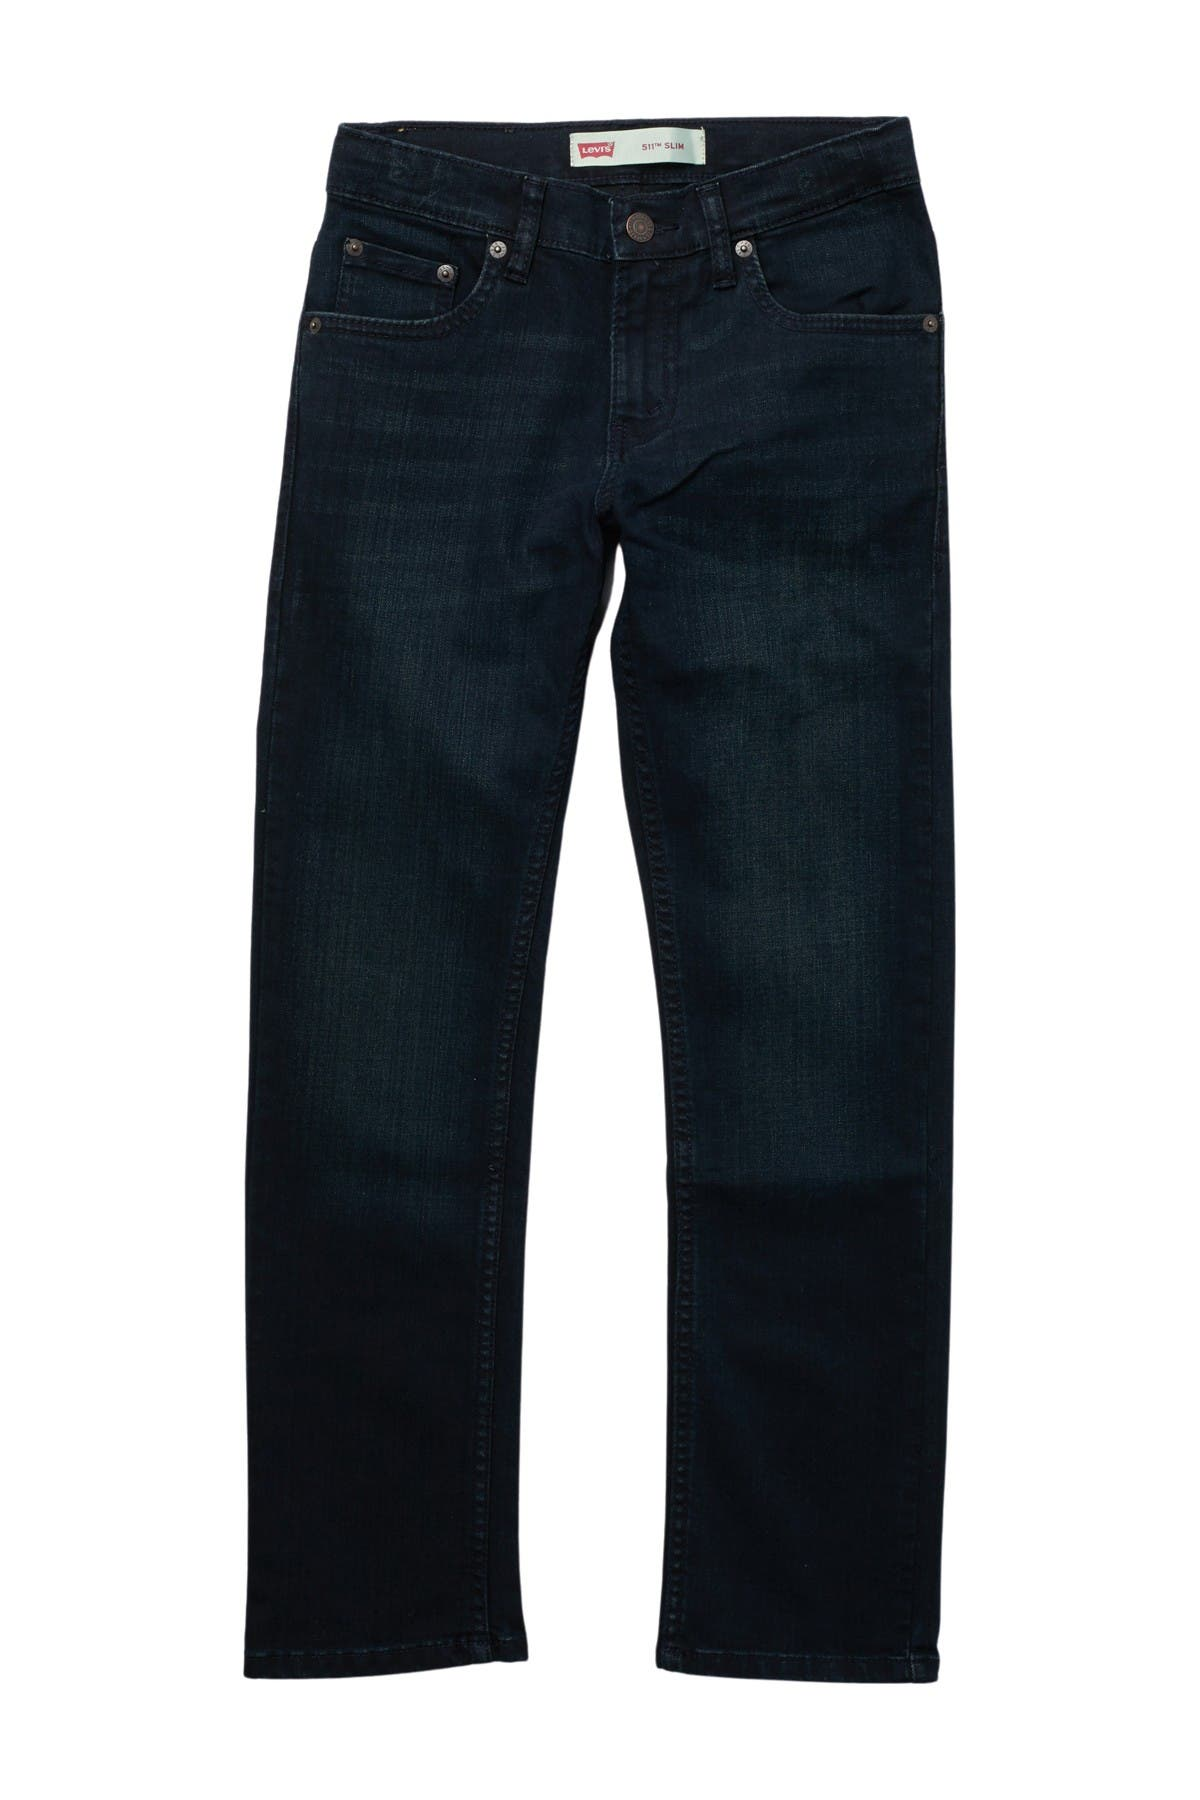 Image of Levi's 511 Slim Fit Jeans